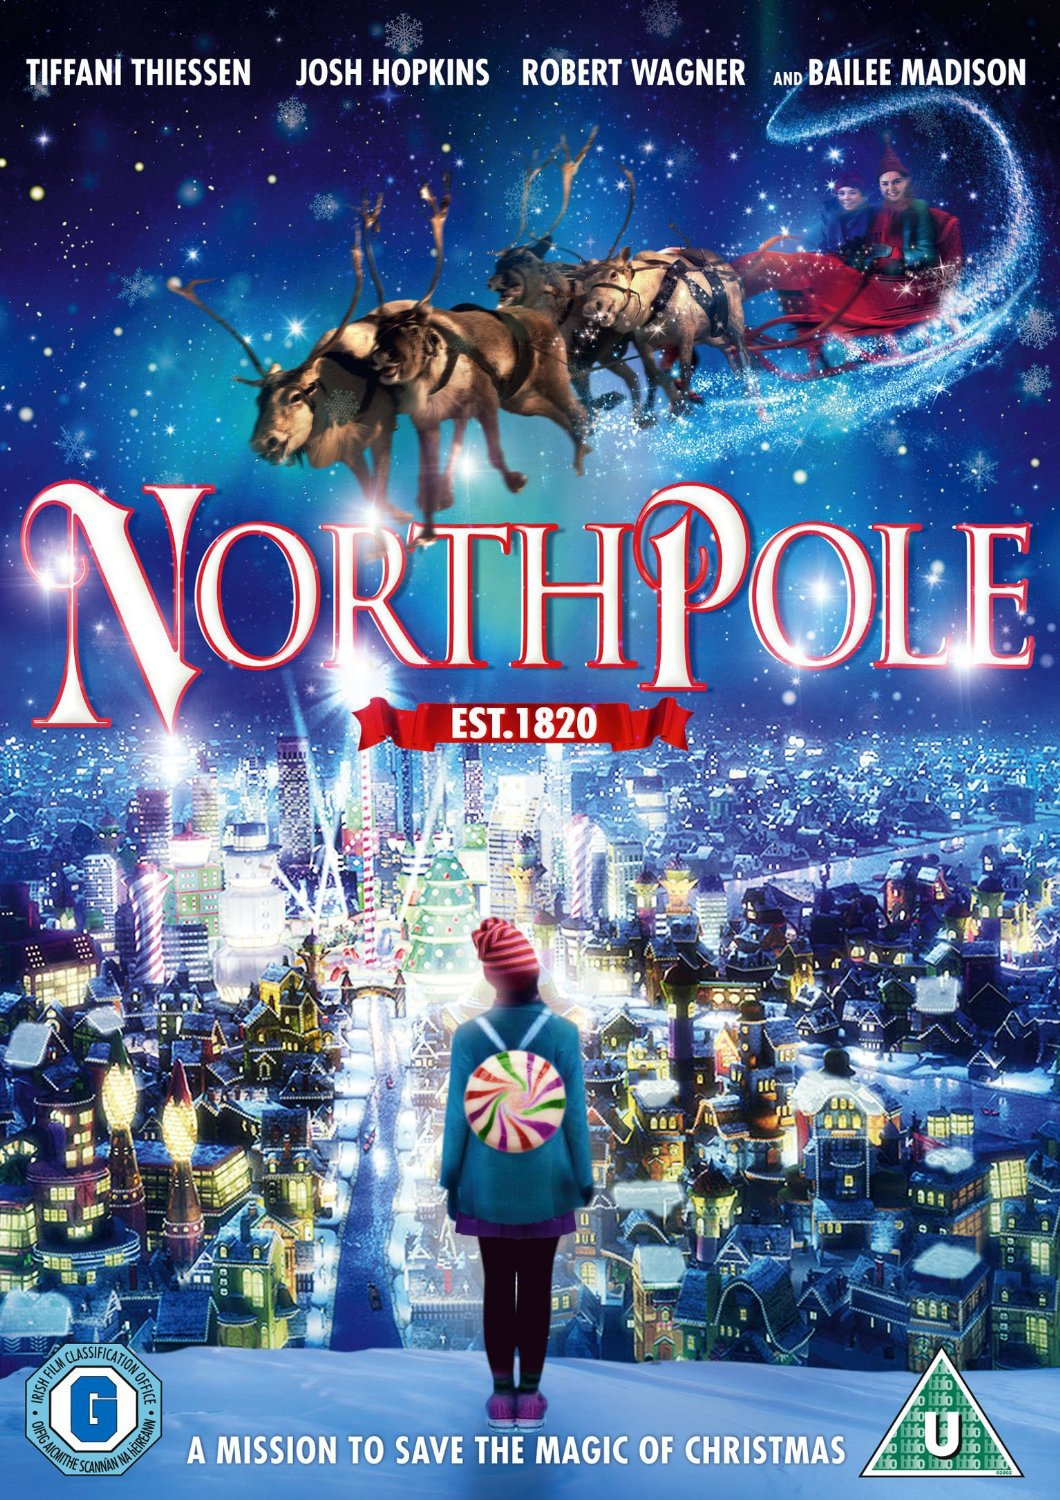 Northpole [DVD]: Amazon.co.uk: Tiffani Thiessen, Josh Hopkins ...